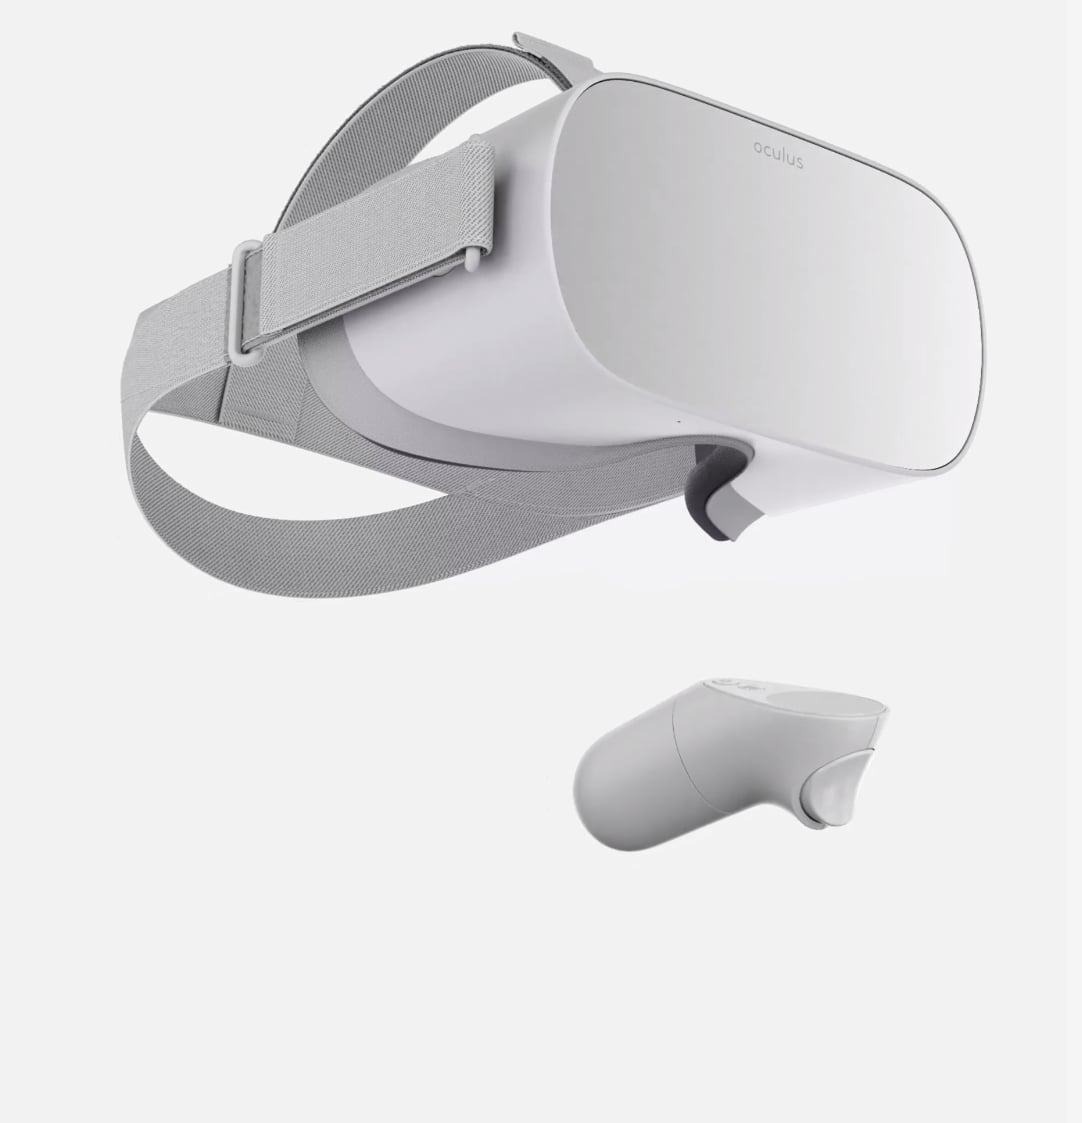 Oculus Go: Starting at $149 + Free Shipping